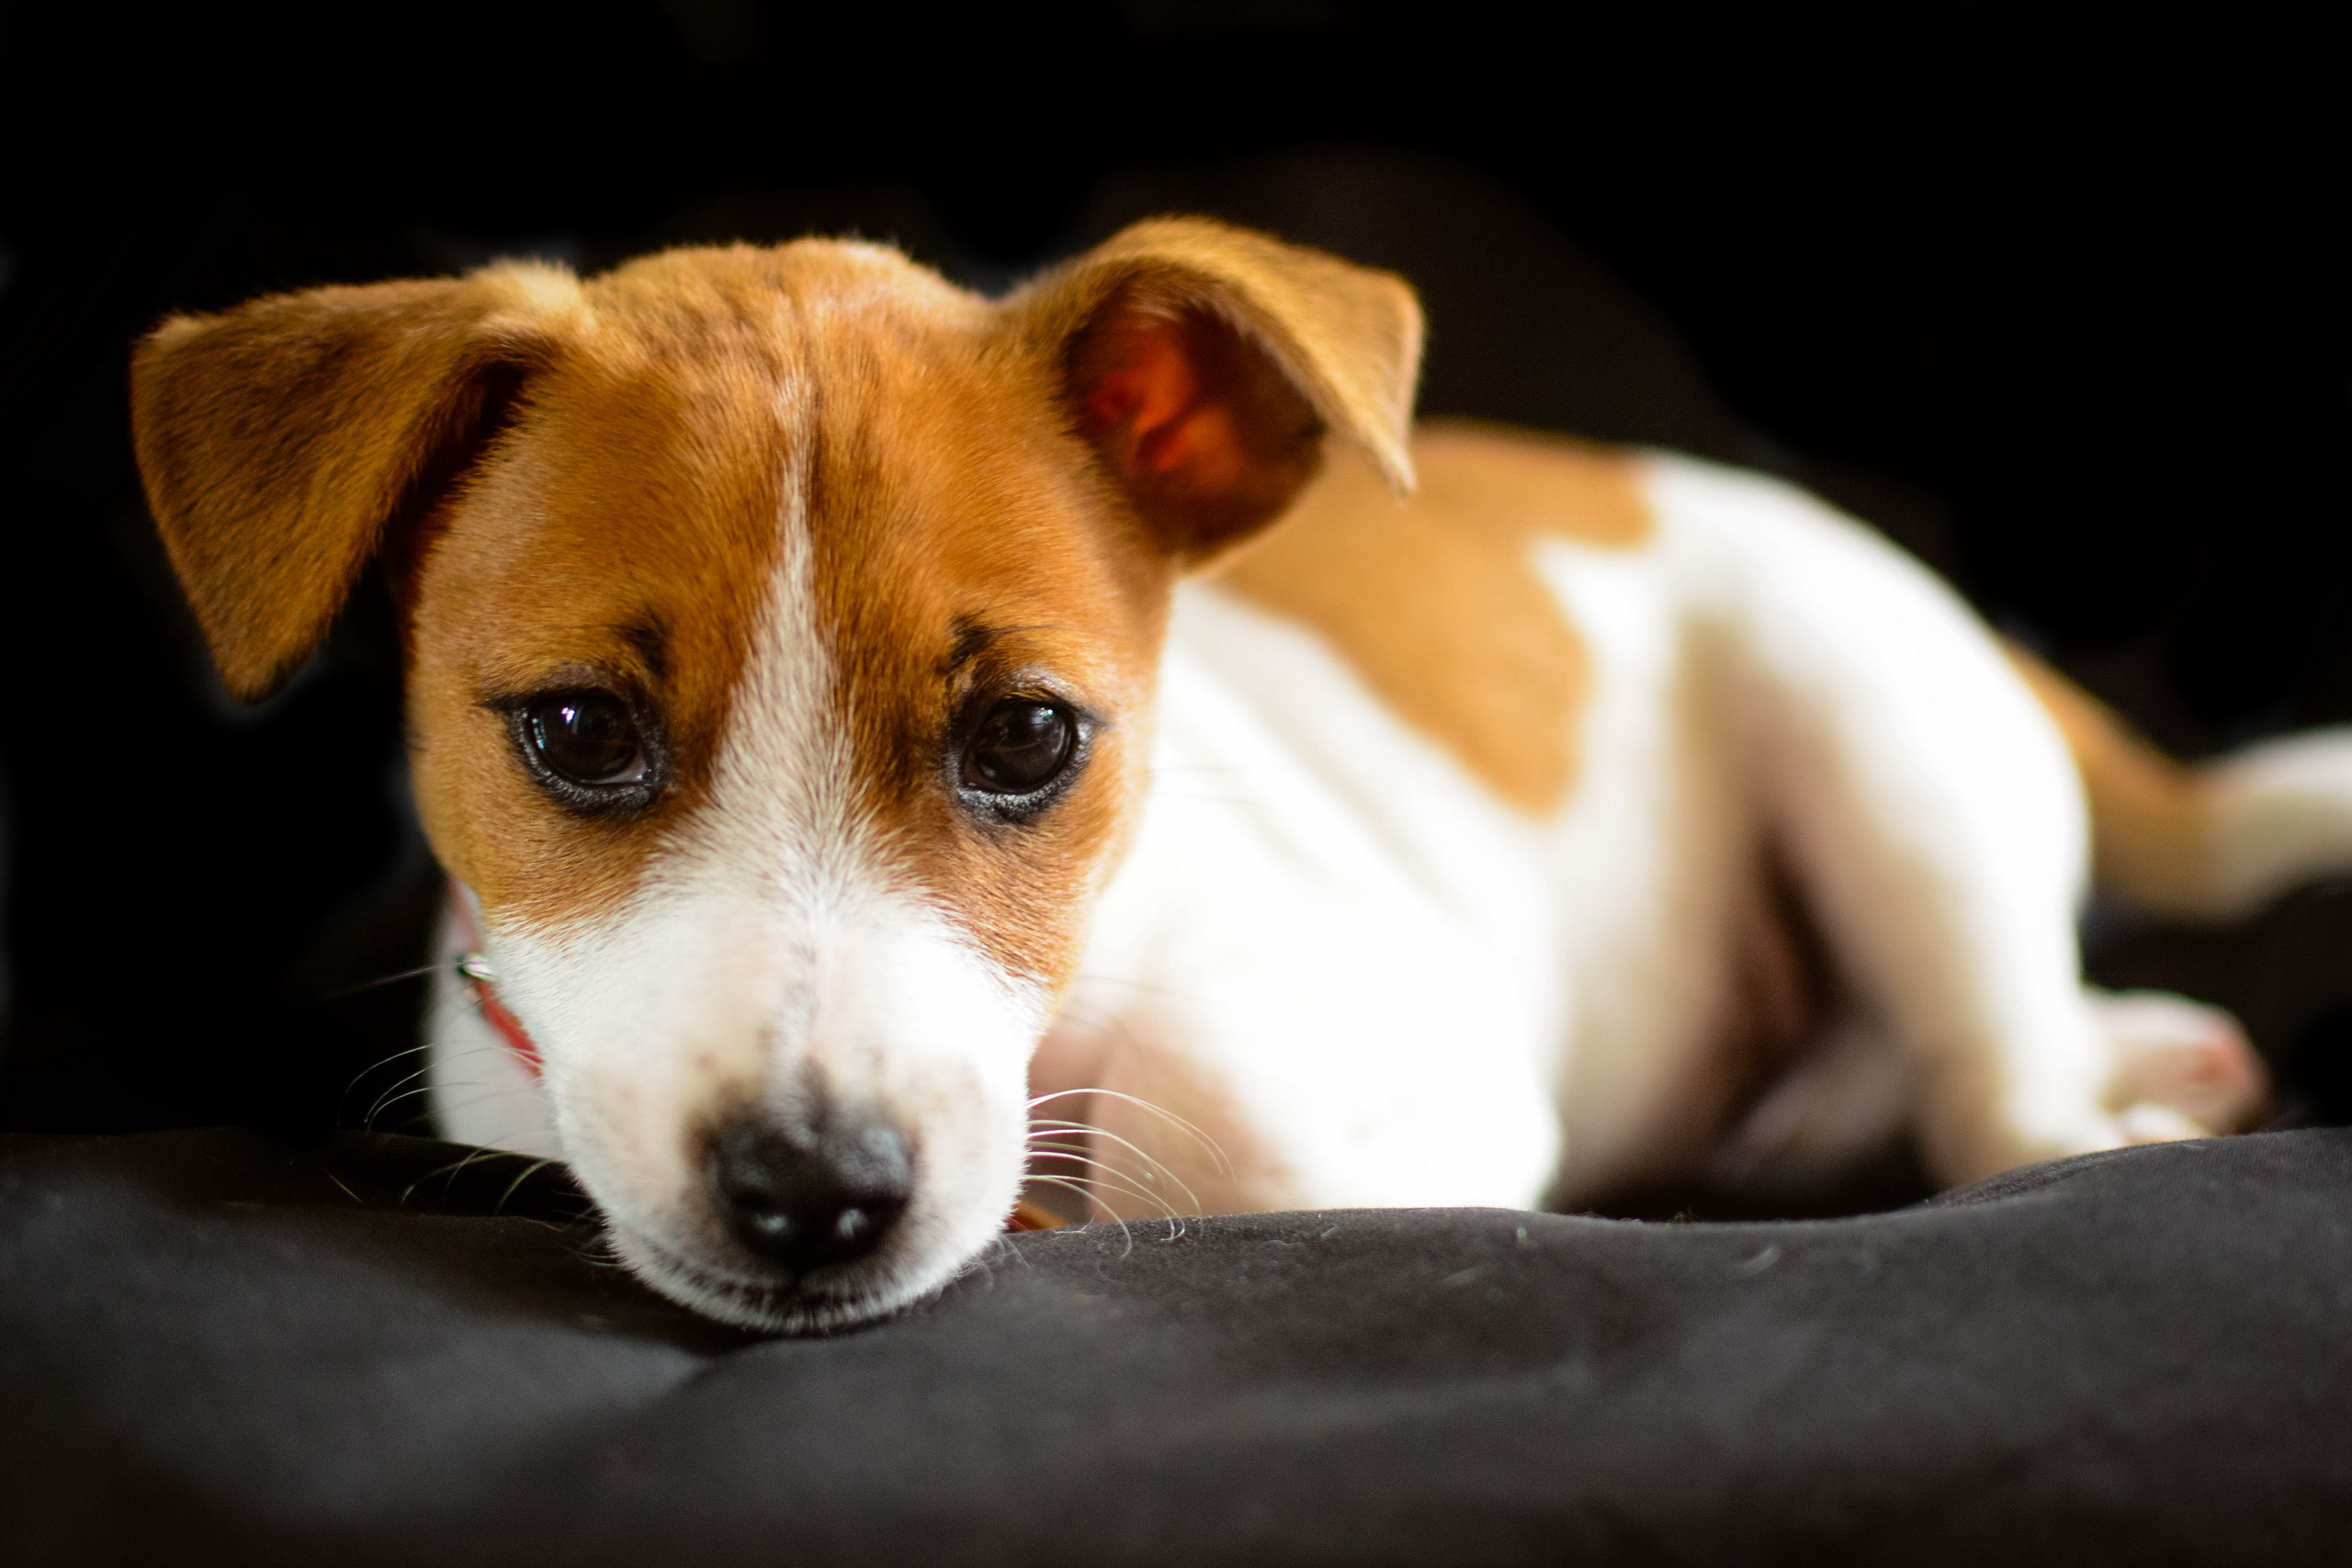 Cute Puppies Wallpapers For Mobile Jack Russell Terrier Hd Wallpaper Background Image